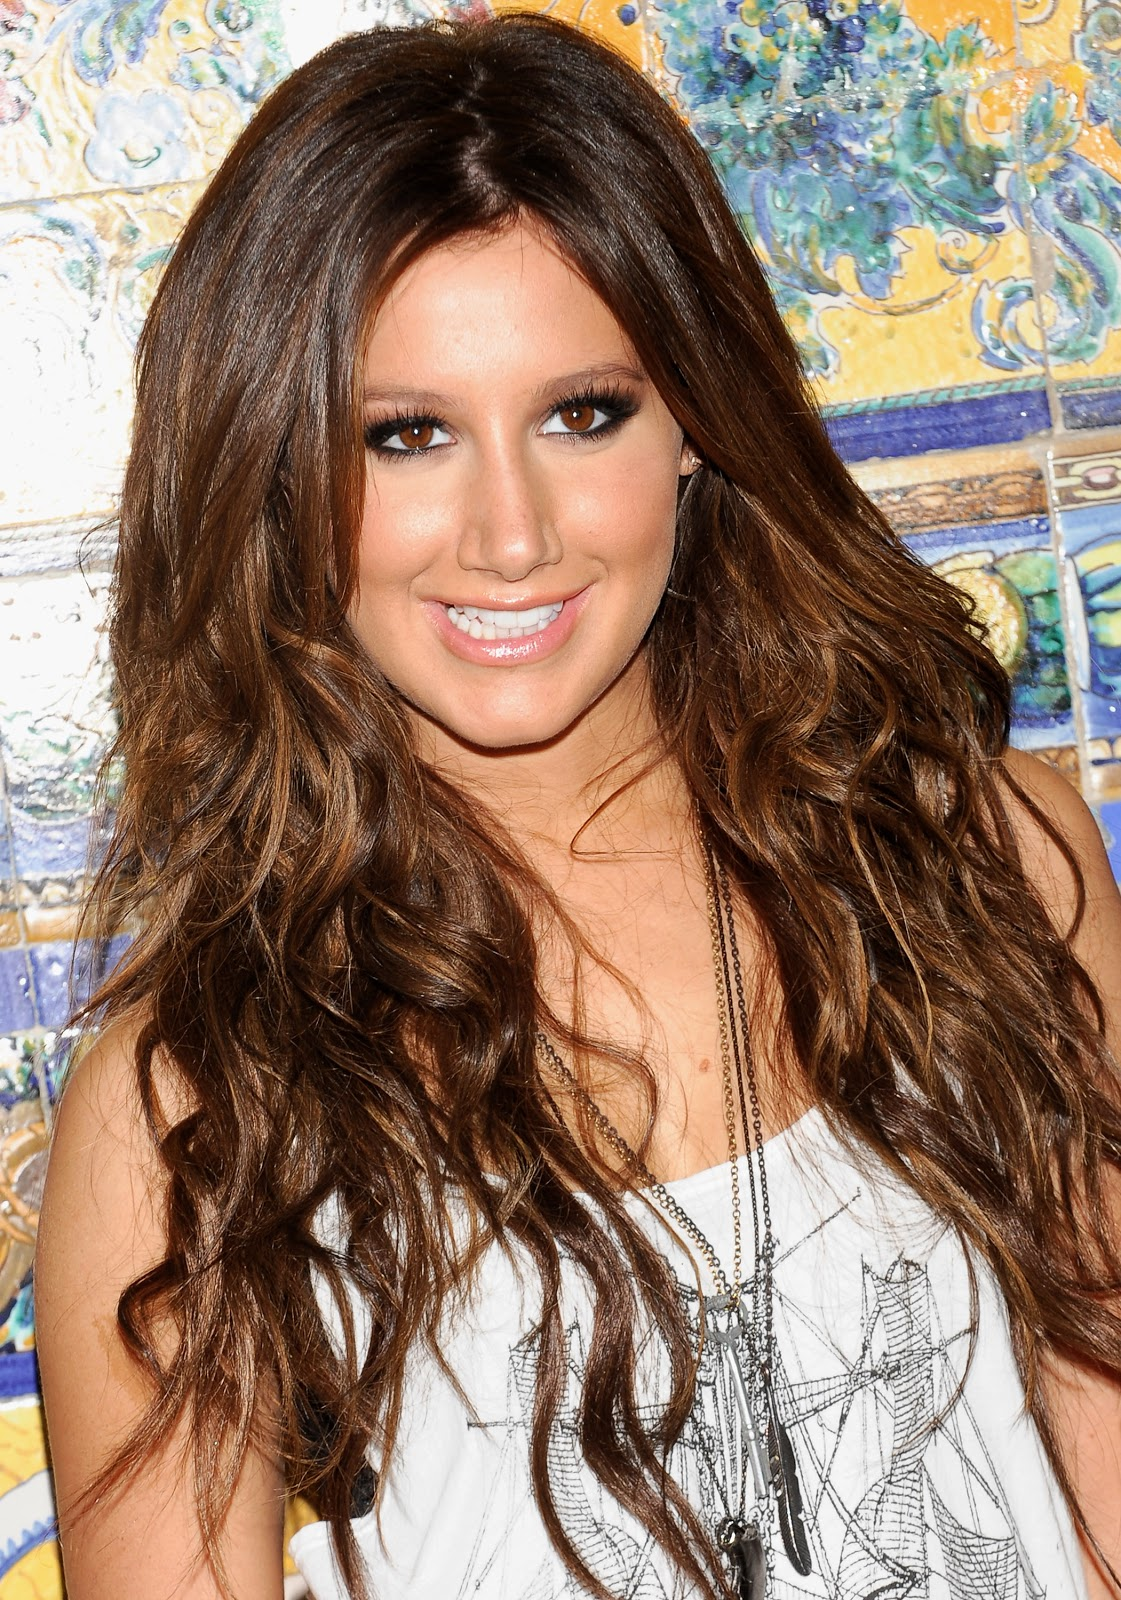 http://2.bp.blogspot.com/-EGbOVSJ_-MM/TviaQs1akNI/AAAAAAAABXI/Pss8L3s3T4Y/s1600/Ashley-Tisdale-Ashleytisdale-hairstyles-pictures-videos-movies-actress-pics+%252815%2529.jpg